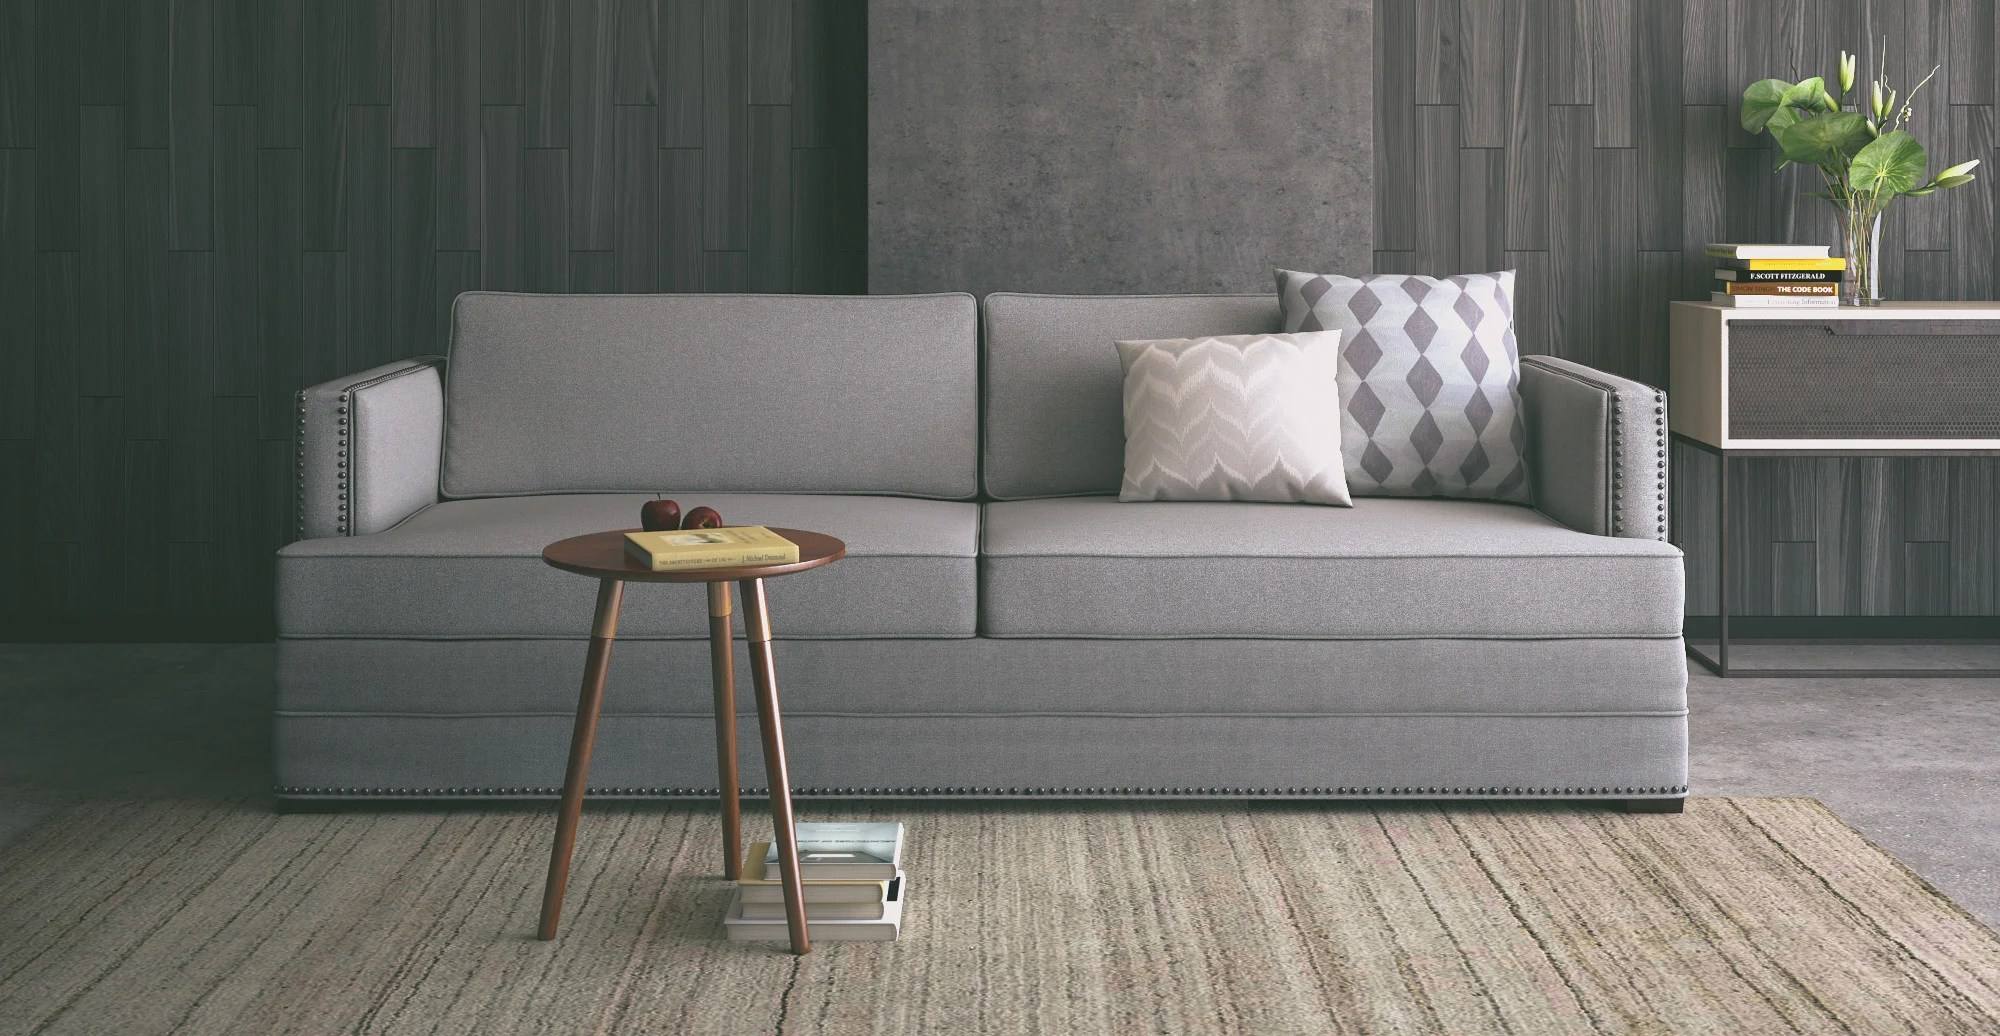 minimal sofa design loose covers for sofas 18 styles designs guide 2017 popular shapes sizes a track arm looks and feels similar to lawson style the arms however are square angular instead of round they often look